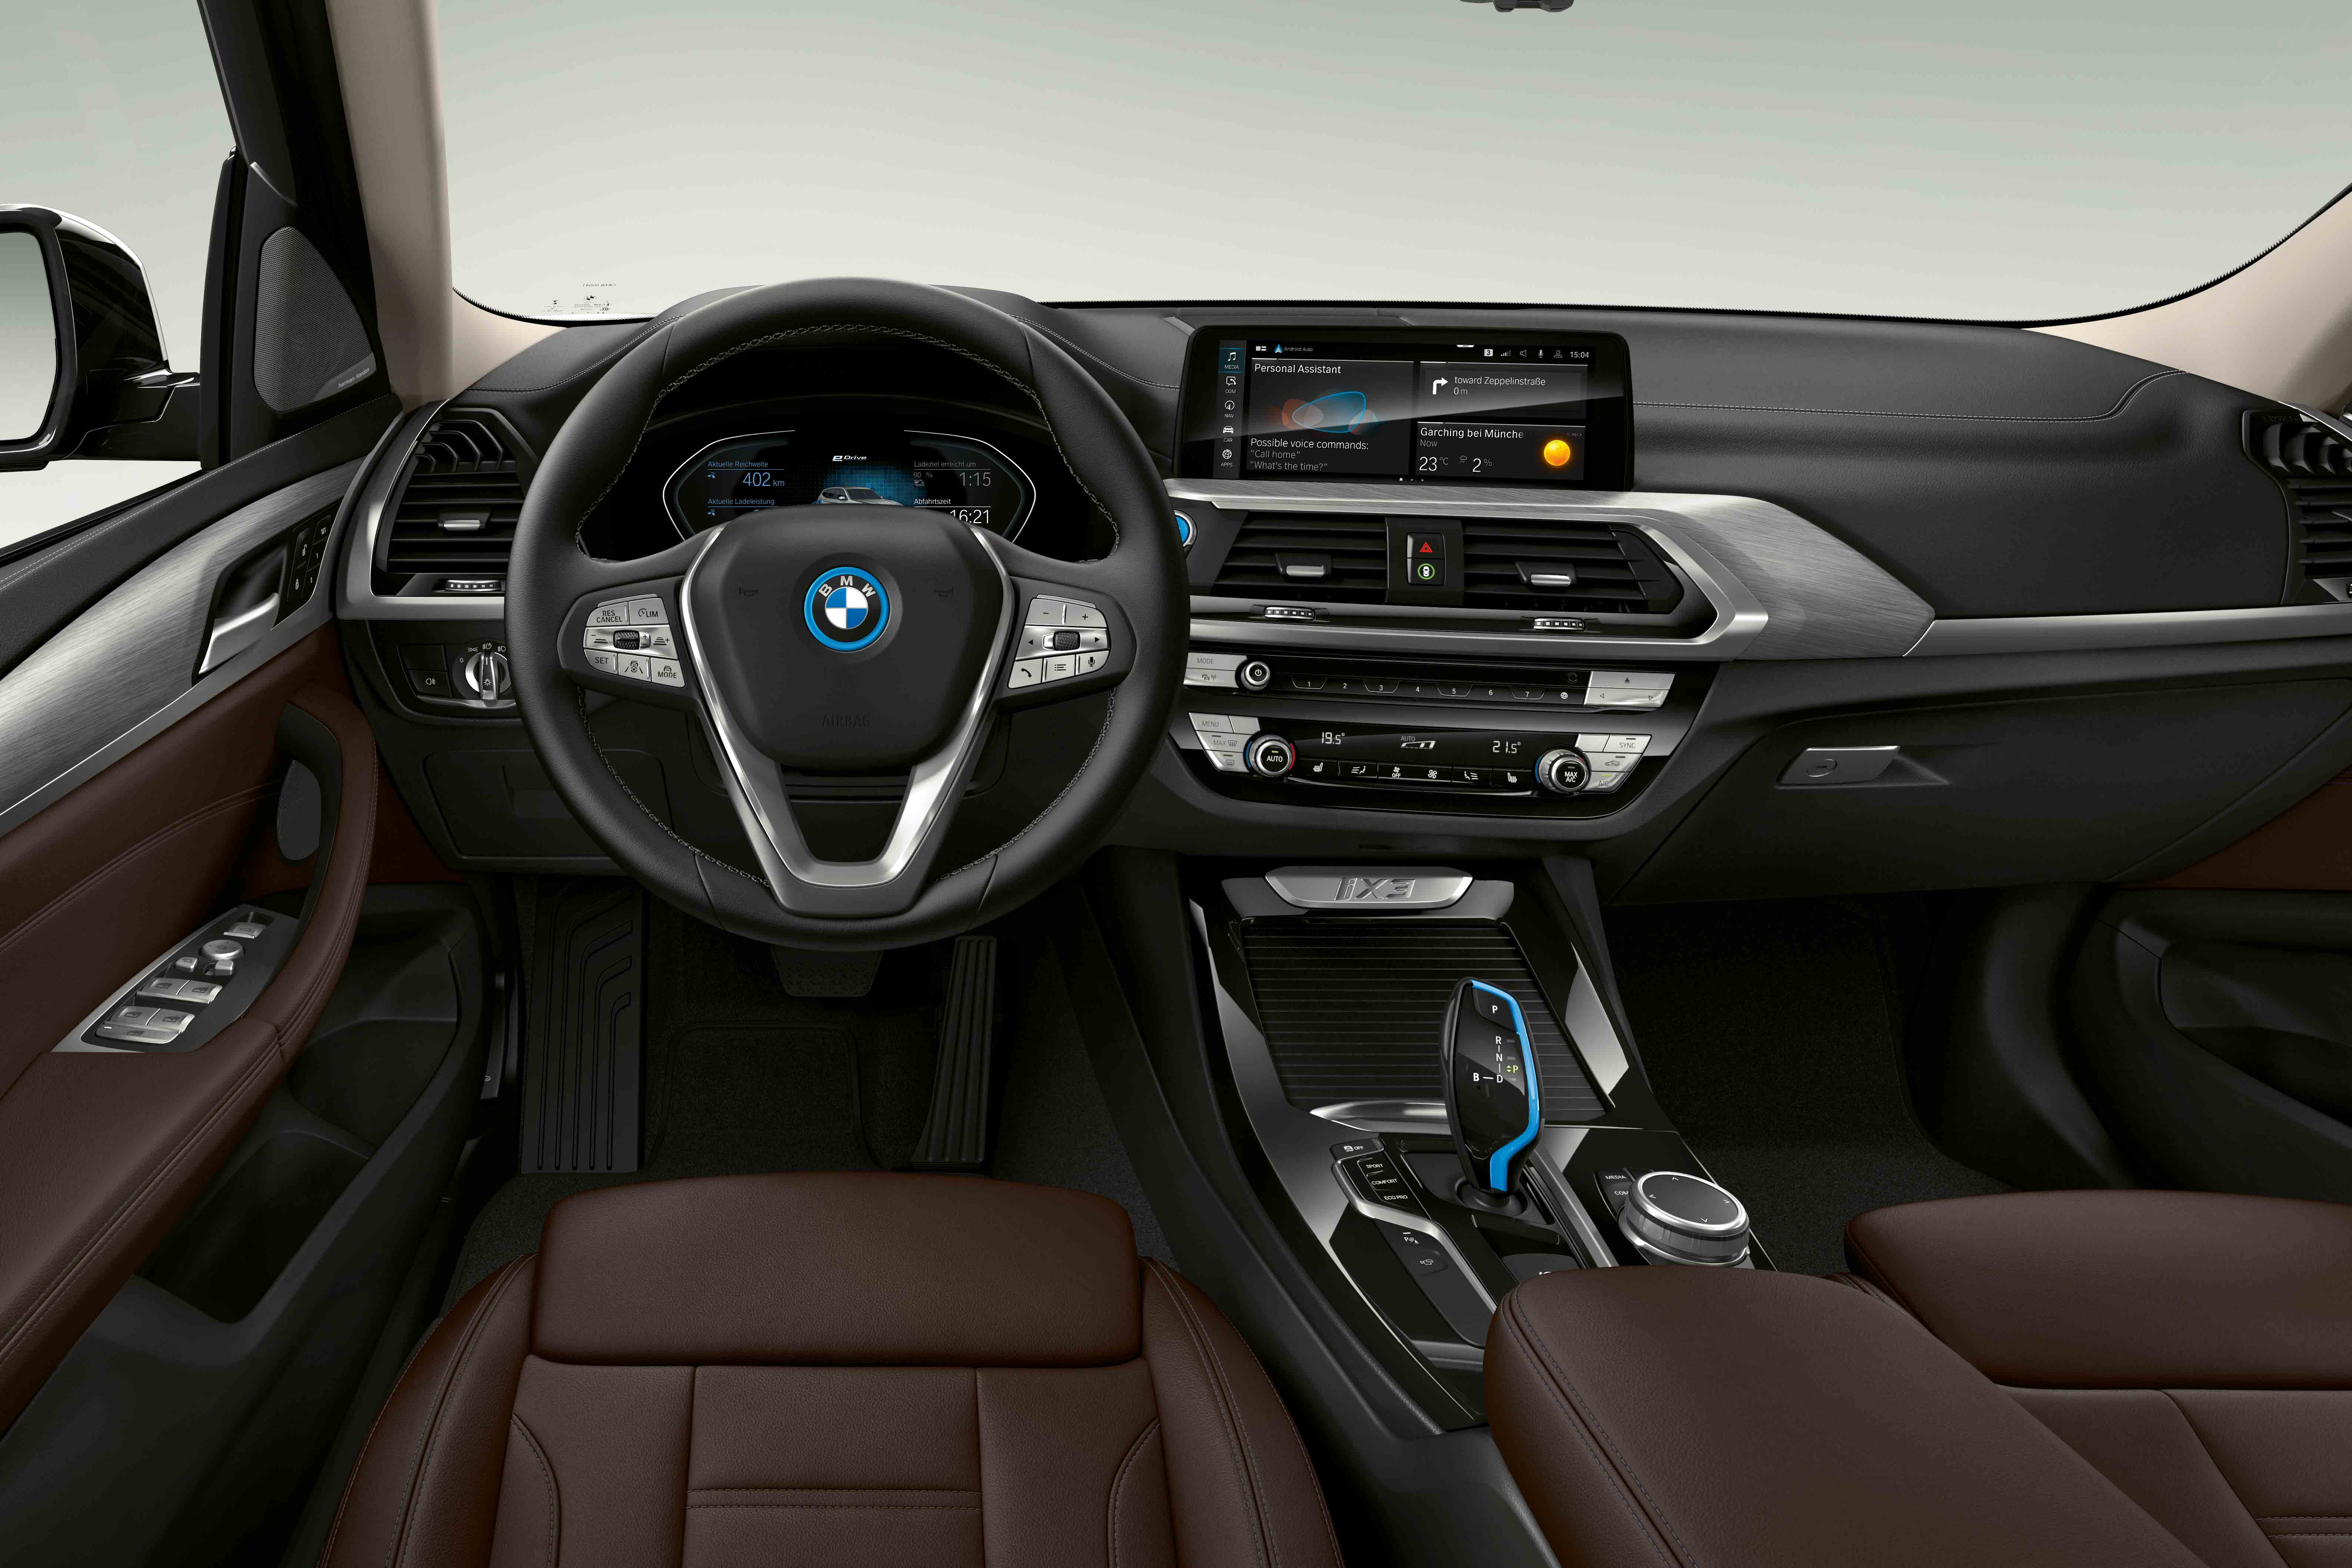 New Bmw Ix3 Specs Prices And On Sale Date Drivingelectric